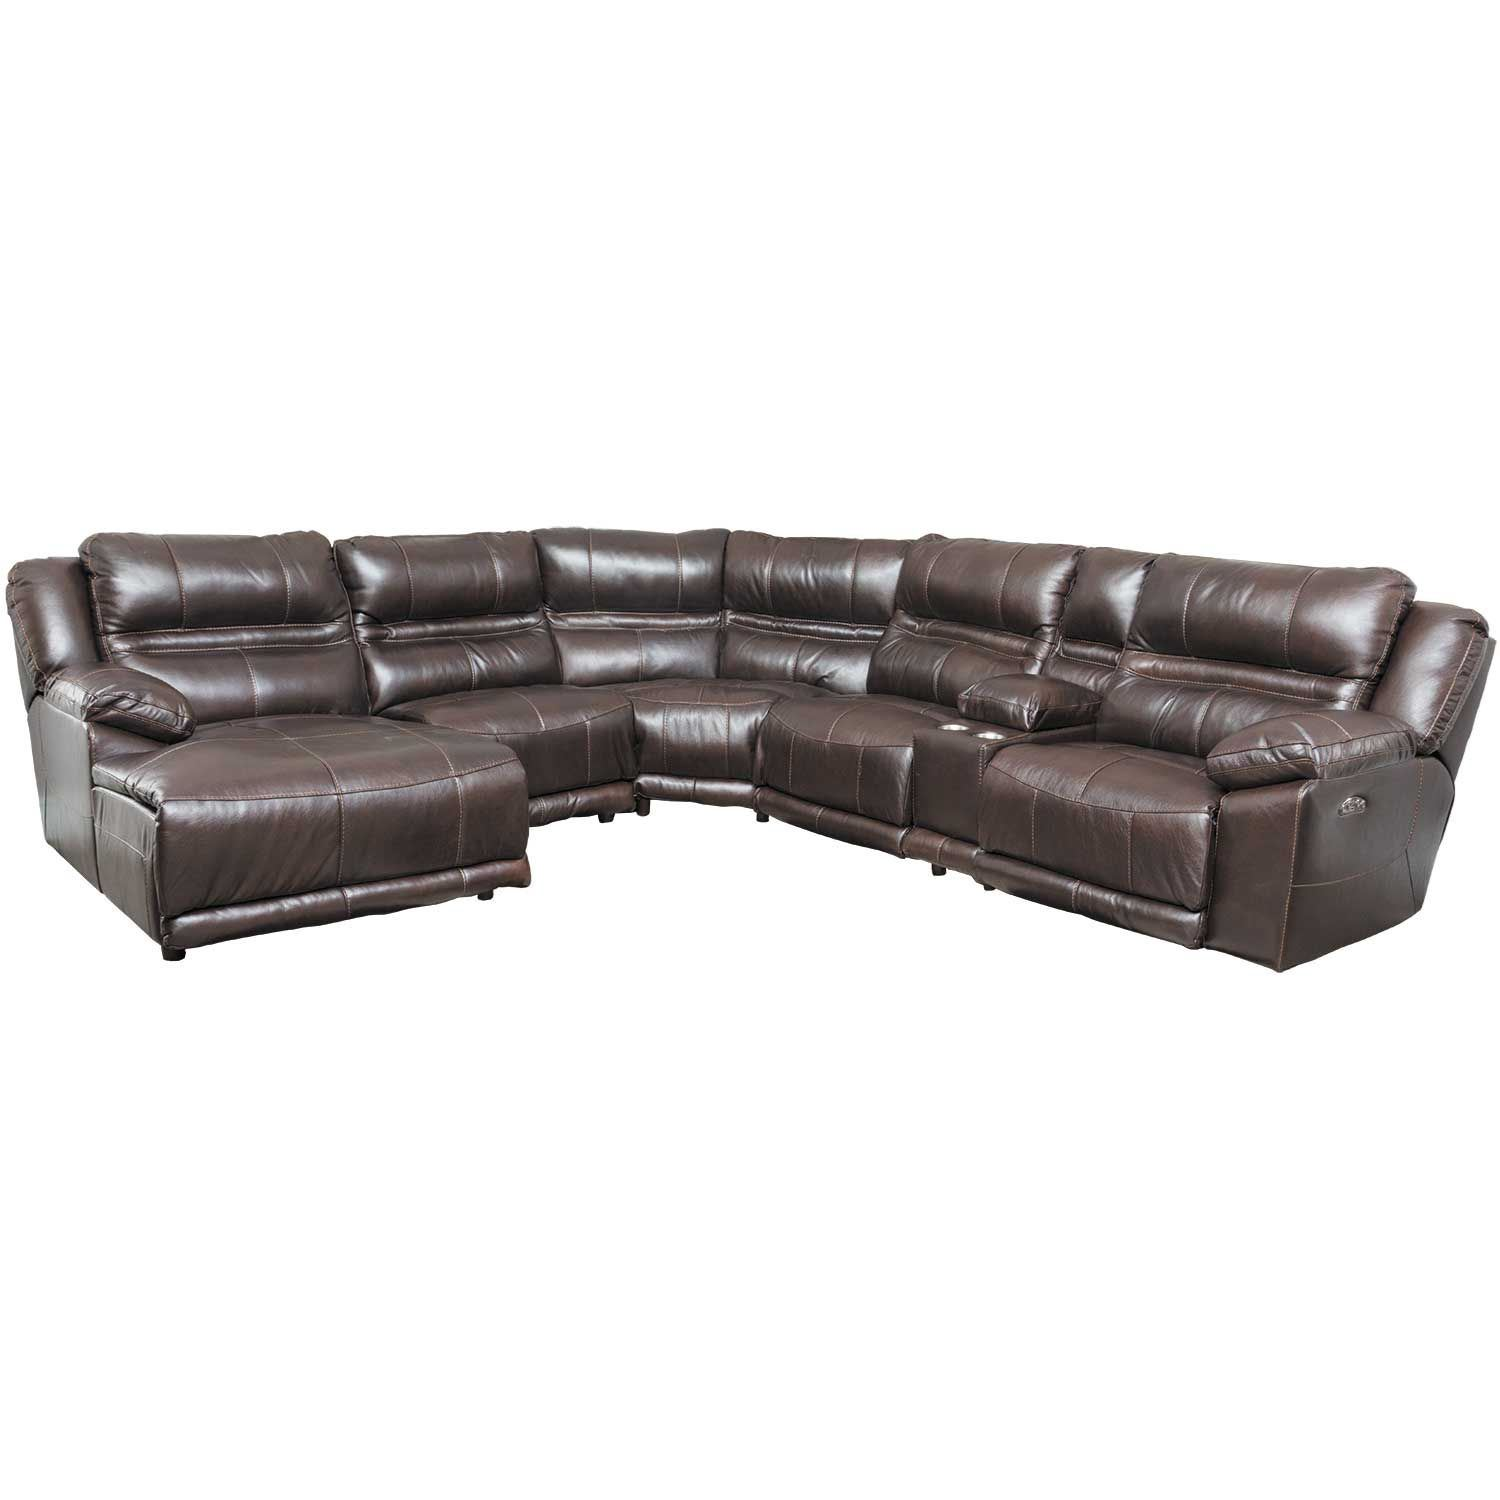 Peachy Bergamo 6 Piece Power Reclining Sectional With Adjustable Headrest And Laf Chaise Uwap Interior Chair Design Uwaporg